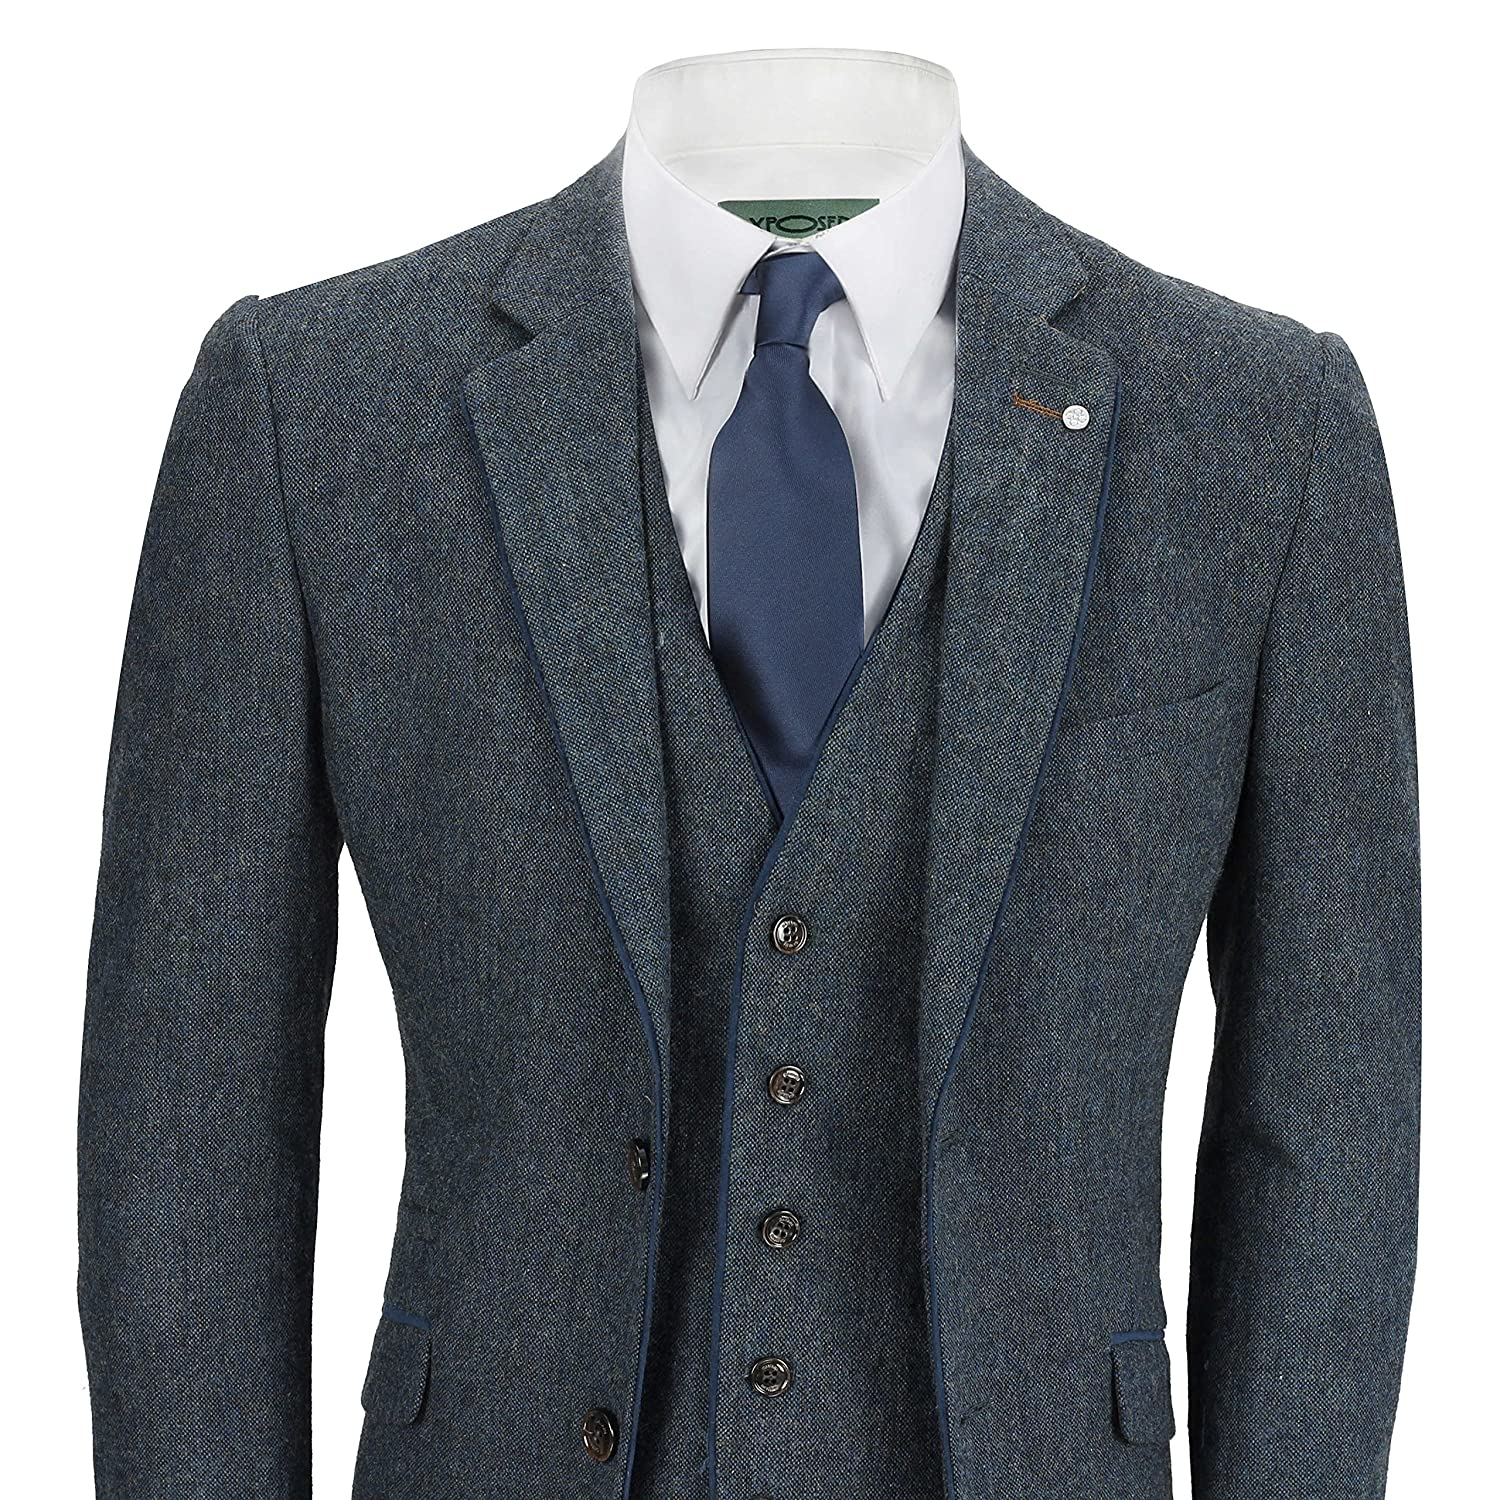 1920s Fashion for Men Cavani Mens Navy Blue 3 Piece Suit Wool Mix Vintage Herringbone Tweed Smart Formal Retro Tailored Fit $144.99 AT vintagedancer.com